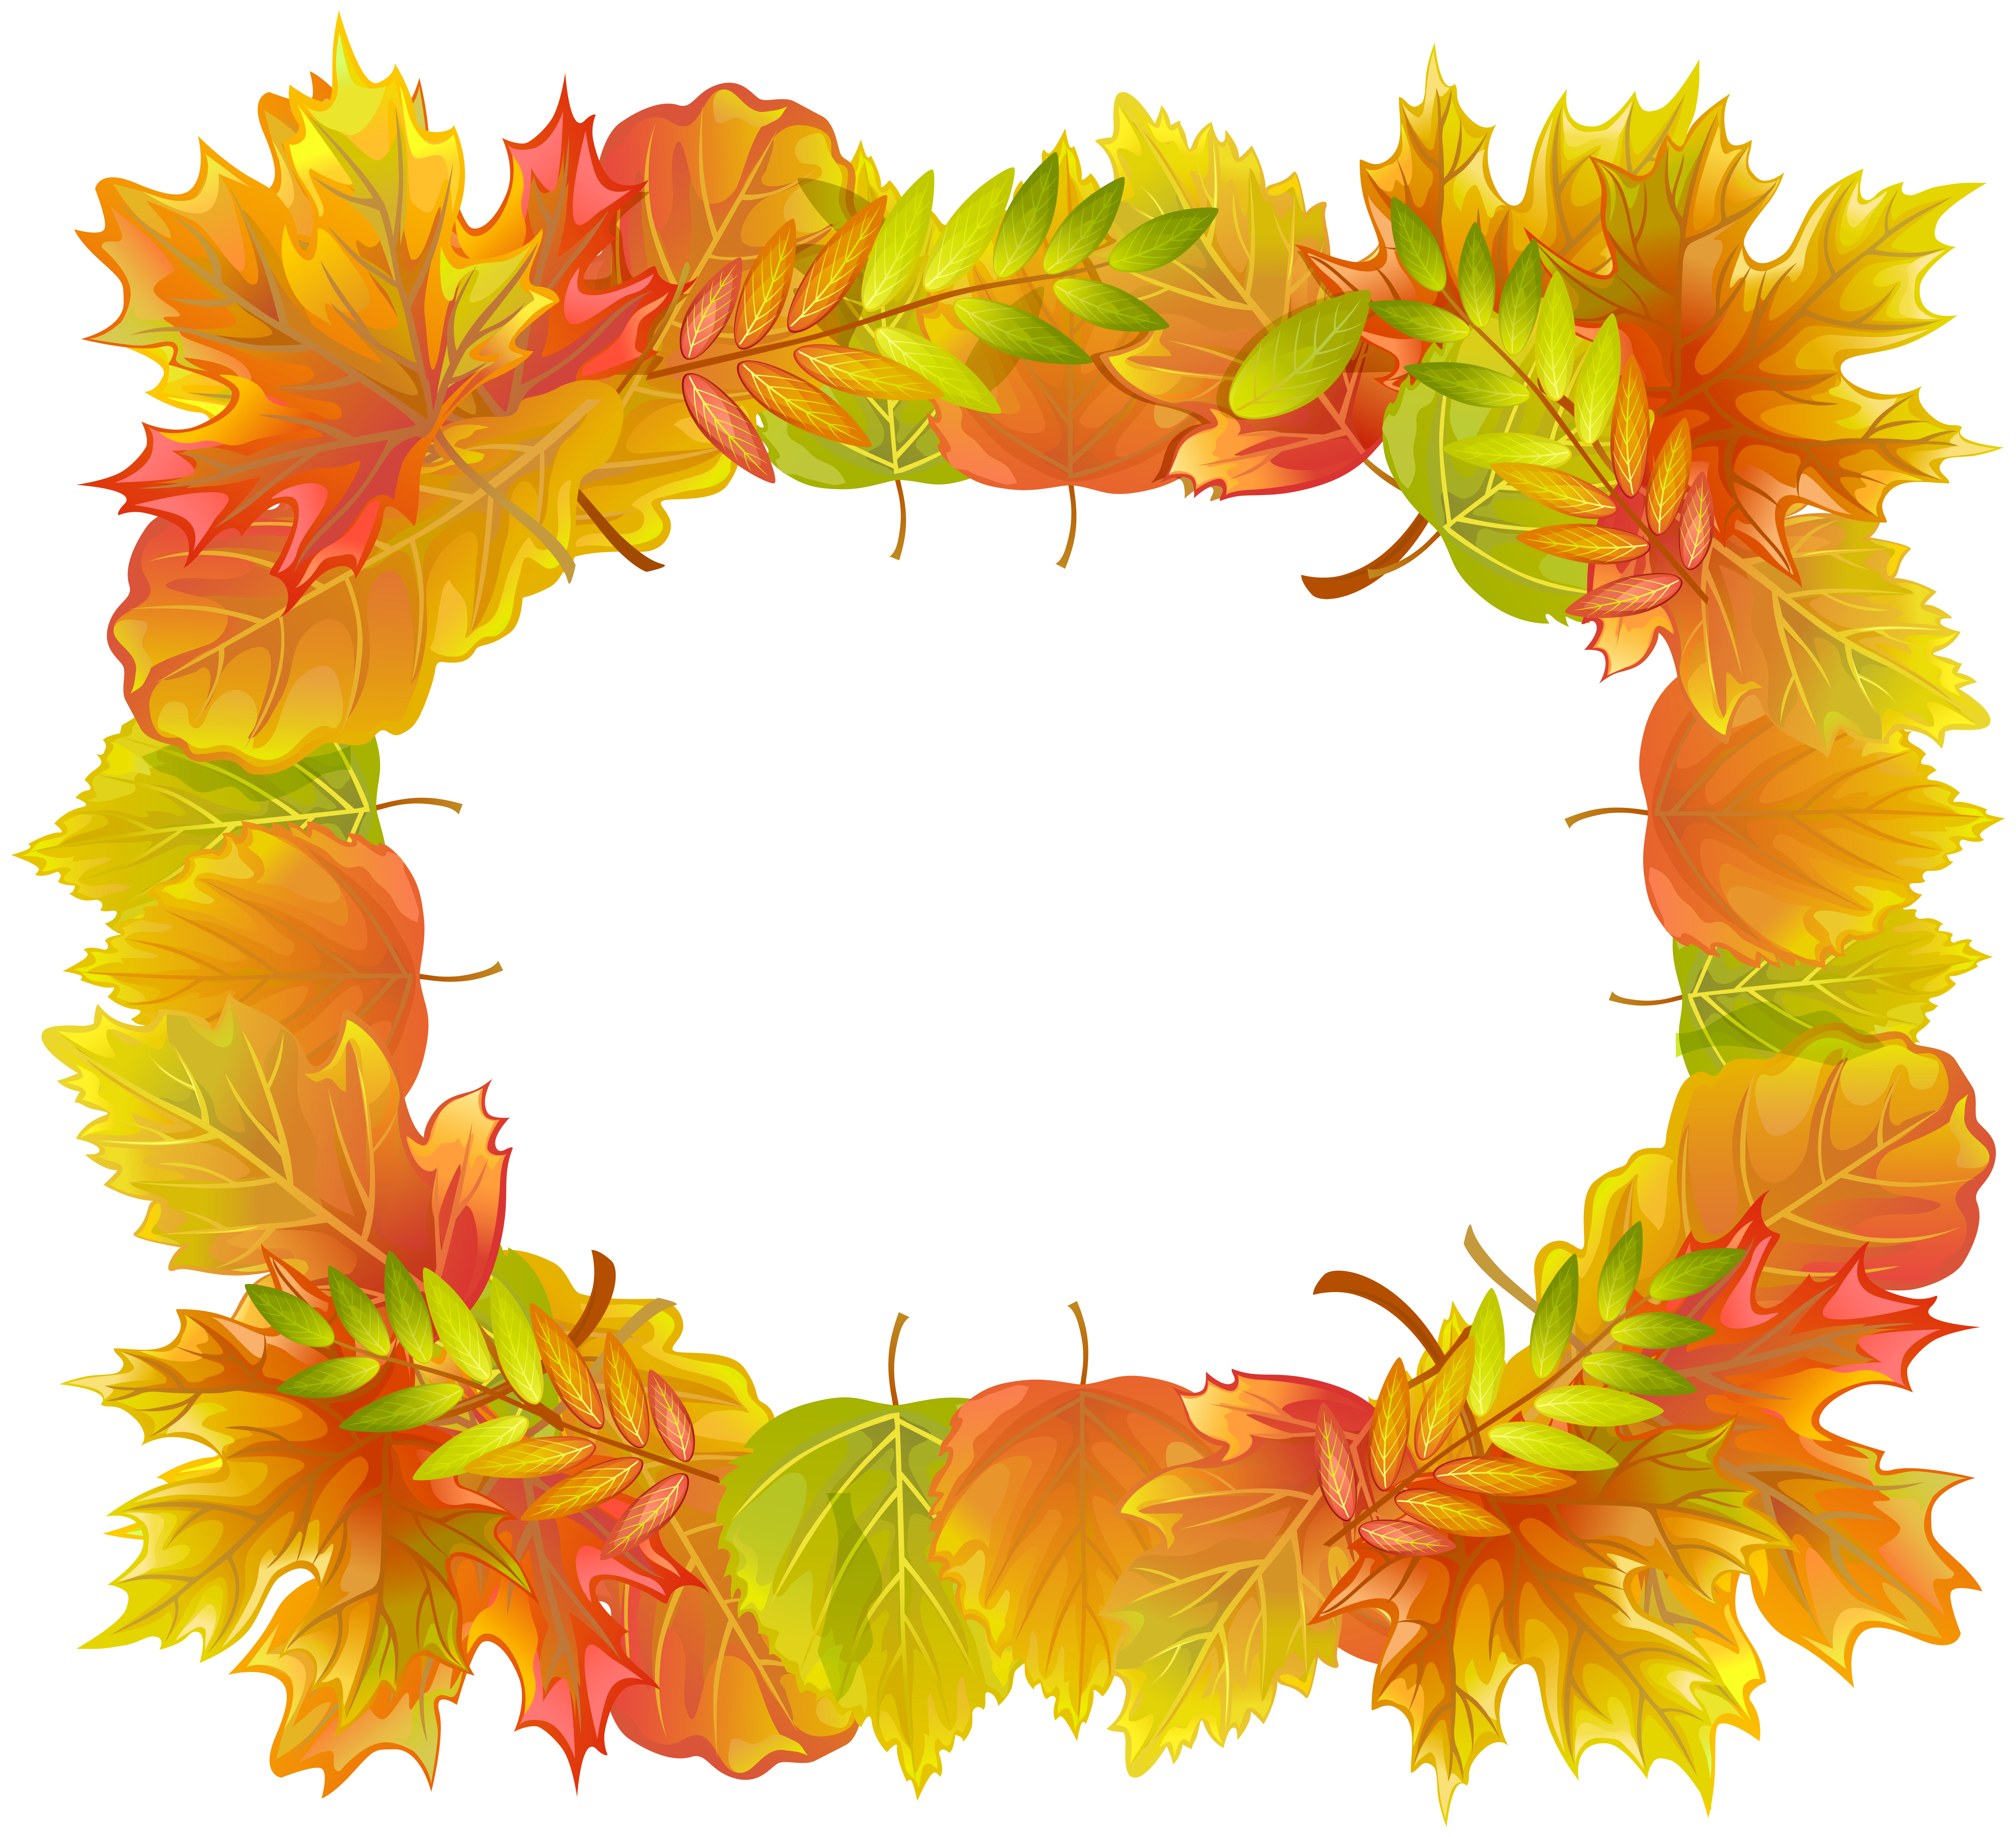 Autumn Leafs Border Frame PNG Clipart Image.